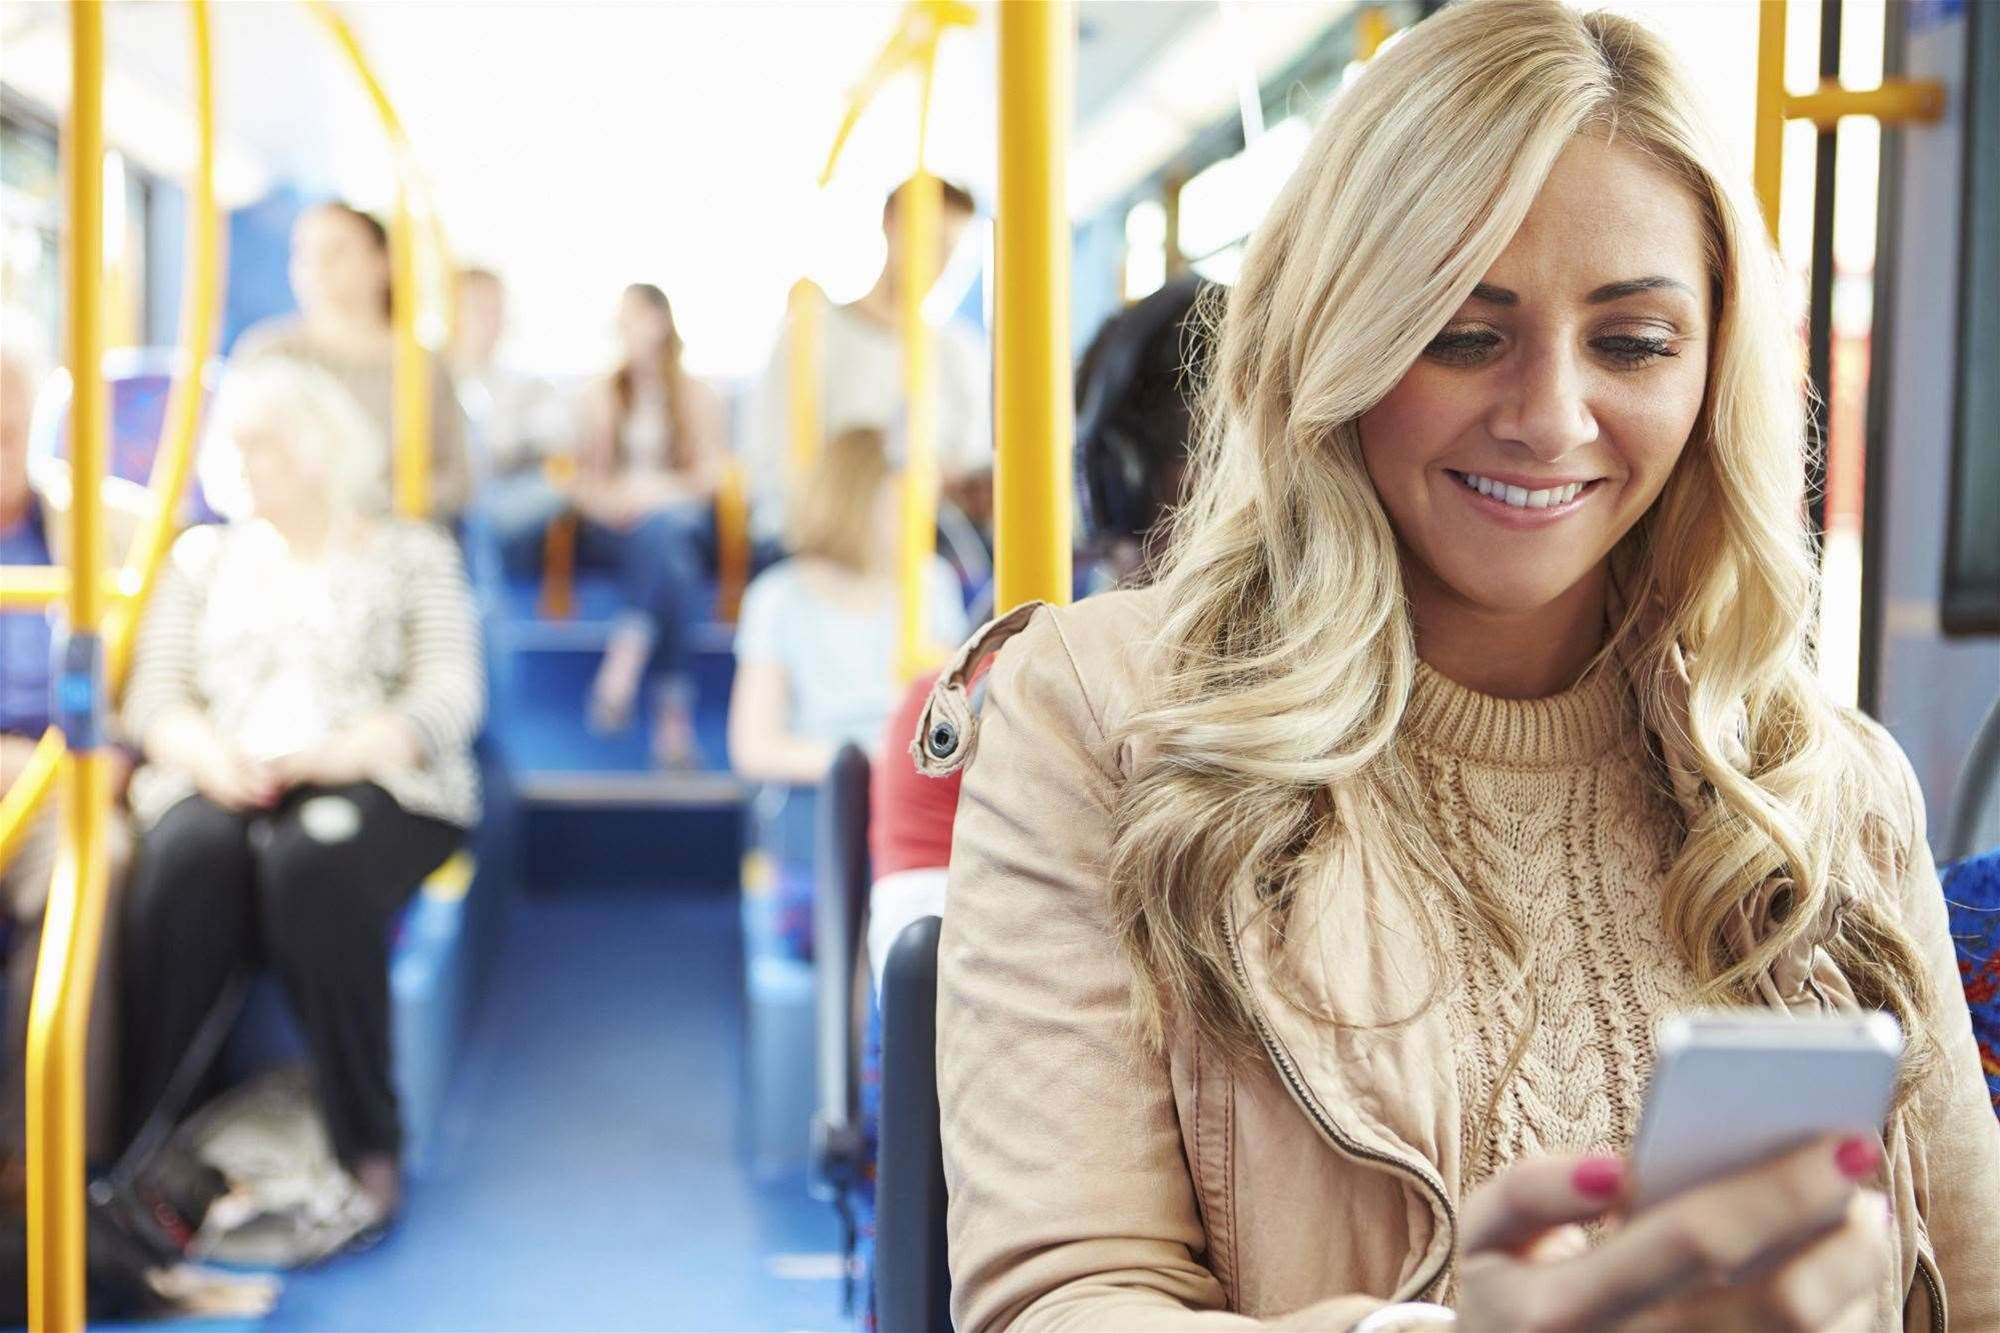 Telstra expands 700 MHz LTE network